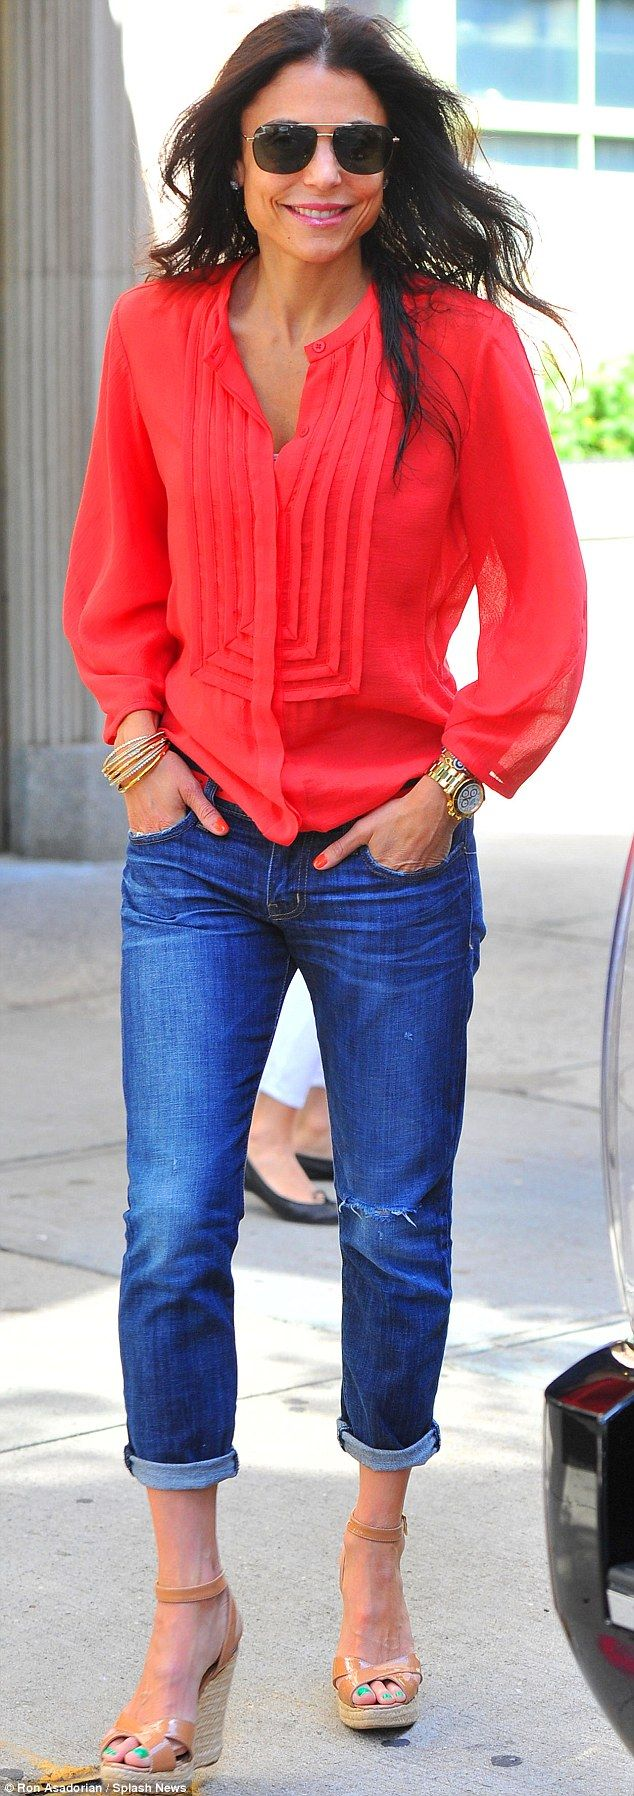 Top ideas for red pants - Bethenny Frankel Steps Out In Bright Red Shirt While Cradling Daughter Bryn Mail Online